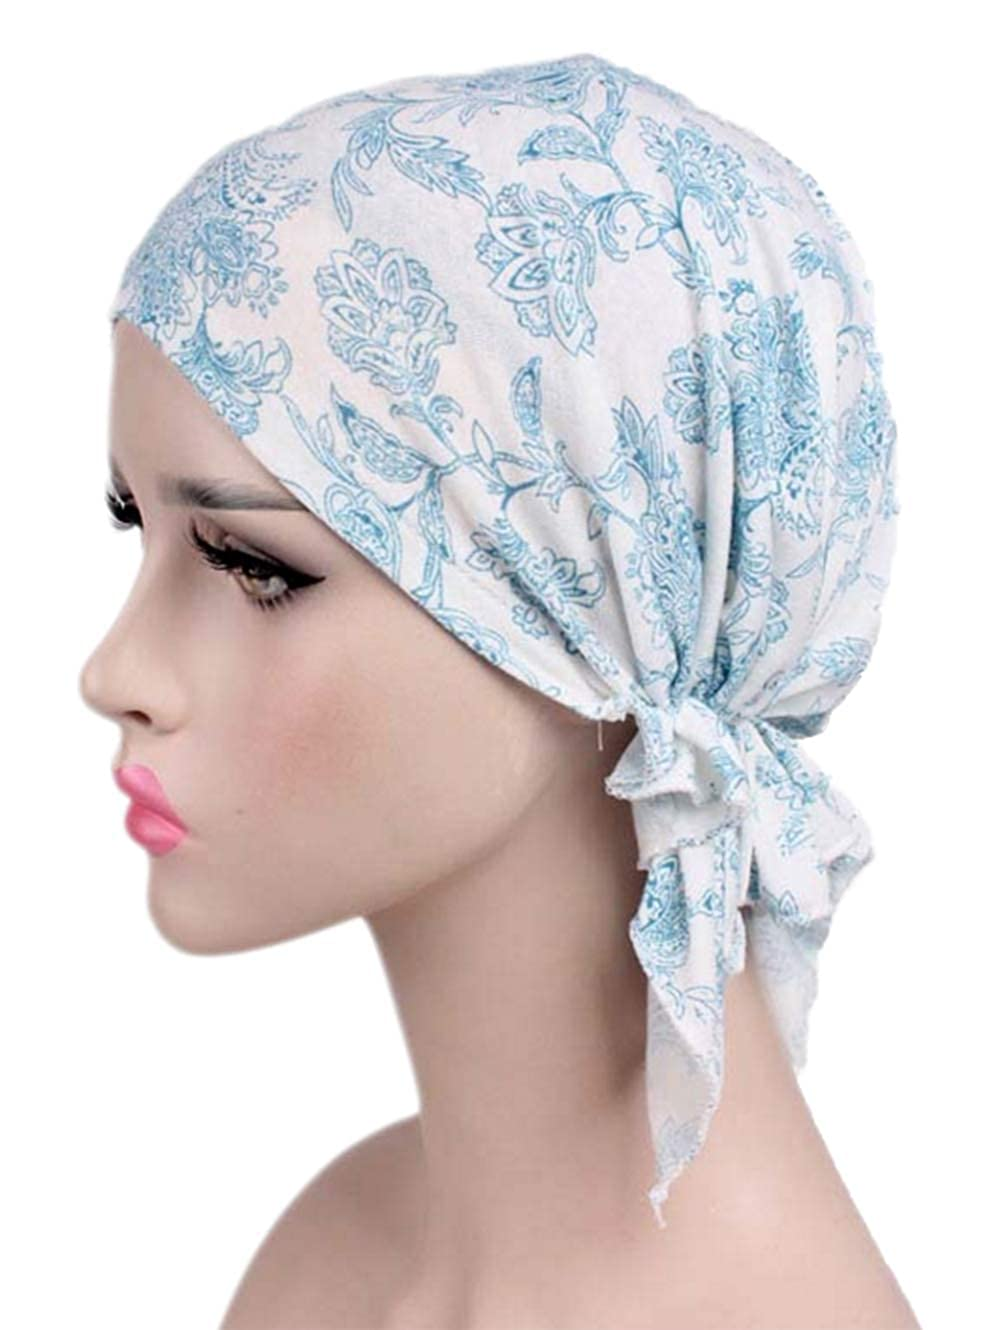 Boboder Womens Cotton Chemo Hats Slouchy Soft Bandana Pre Tied Beanie Turban Cap for Cancer Patients Hair Loss 2 Pack